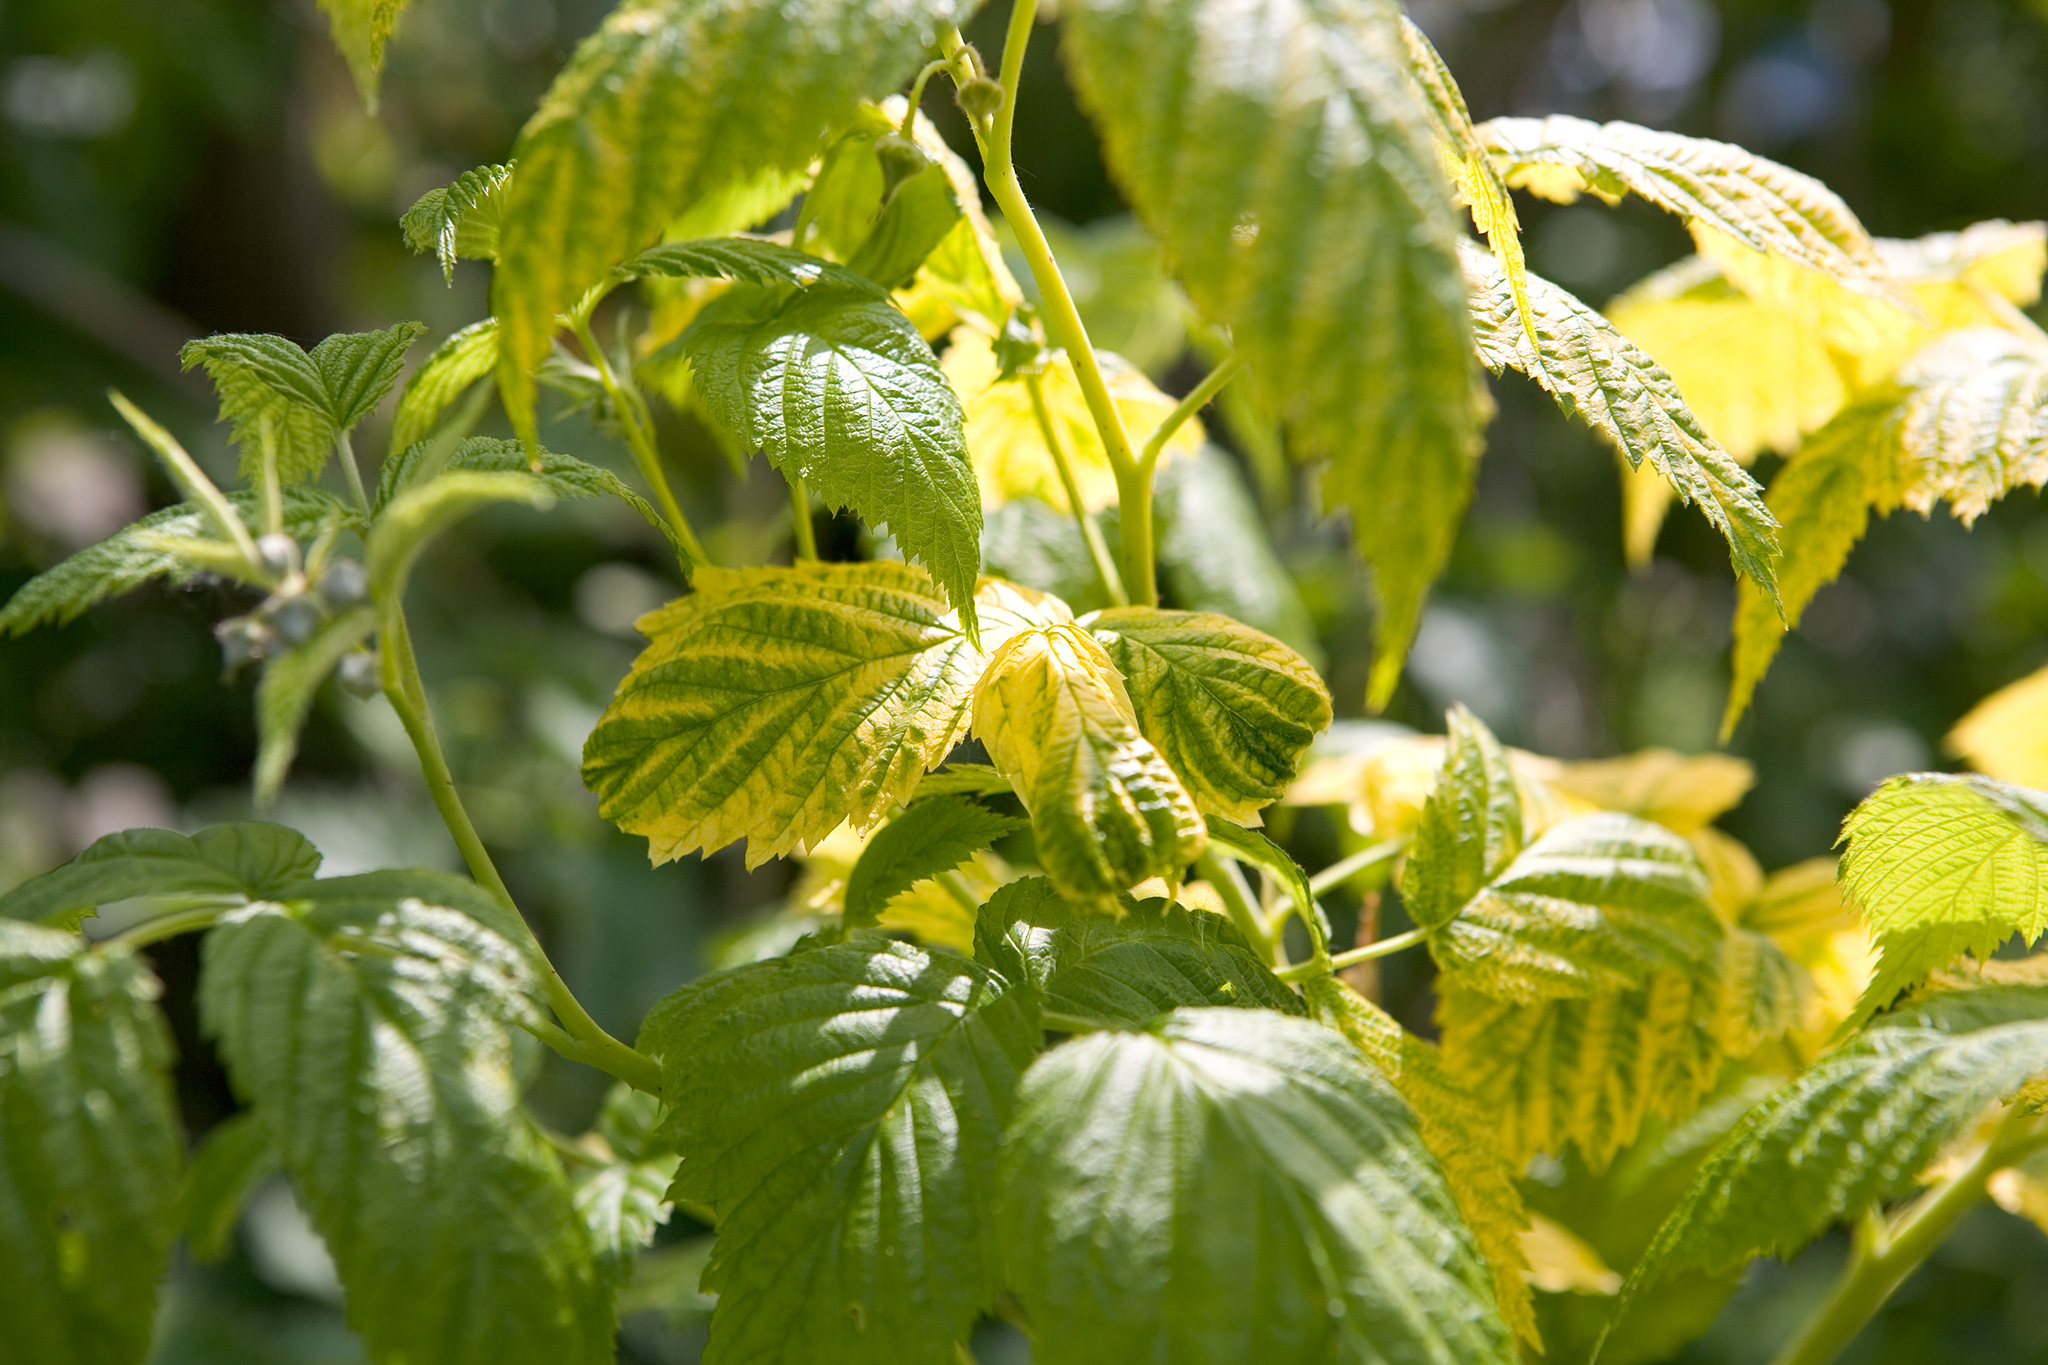 damage-to-leaves-lack-of-nutrition-2